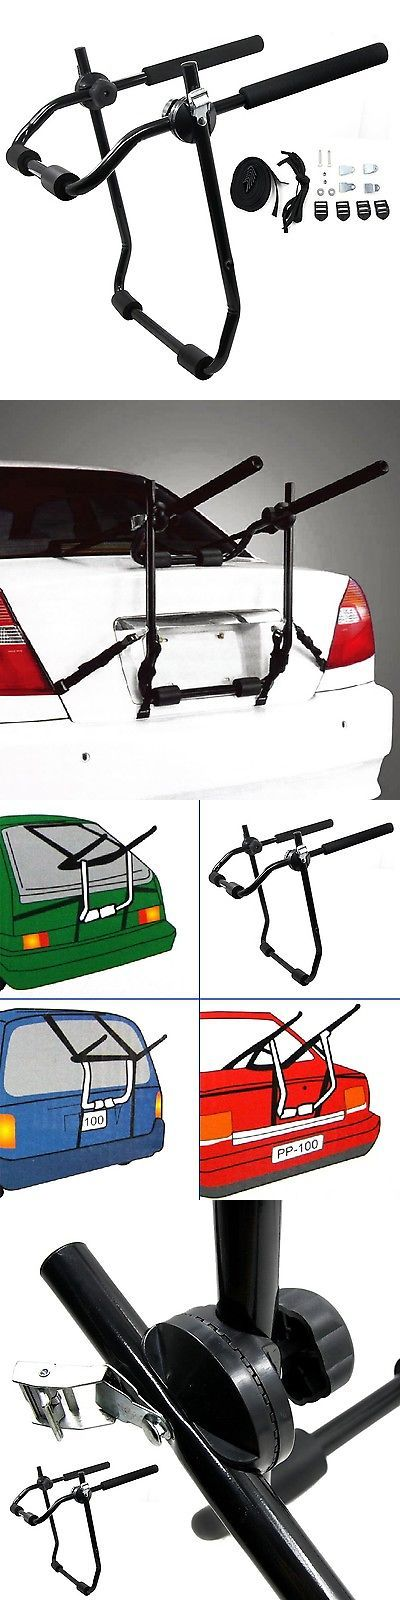 Other Bicycle Accessories 158998: Tirol Bike Bicycle Rear Rack Bike Carrier Q195 Powder Coating M... Free Shipping BUY IT NOW ONLY: $59.73